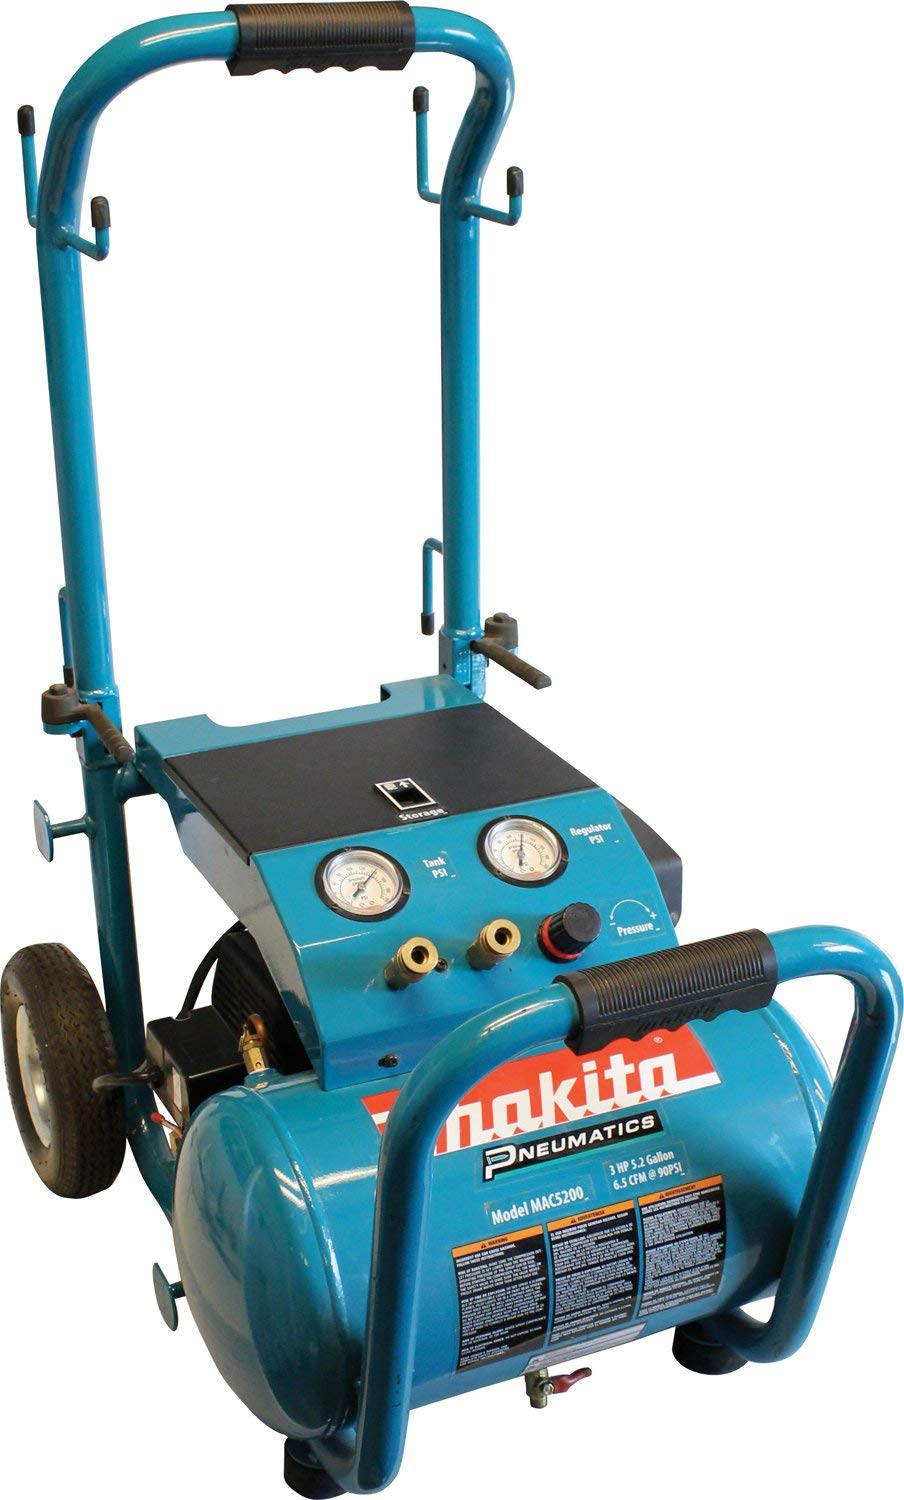 Makita MAC5200 Air Compressor